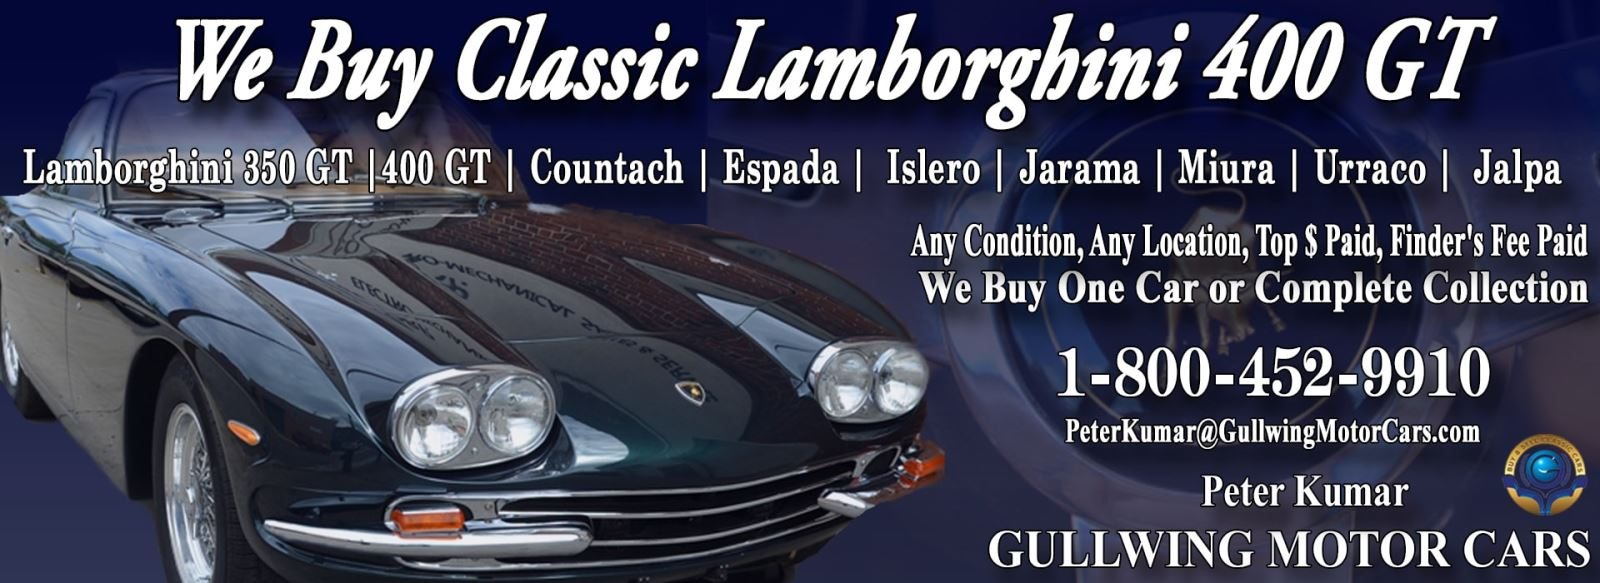 Classic Lamborghini 400GT for sale, we buy vintage Lamborghini 400 GT. Call Peter Kumar. Gullwing Motor